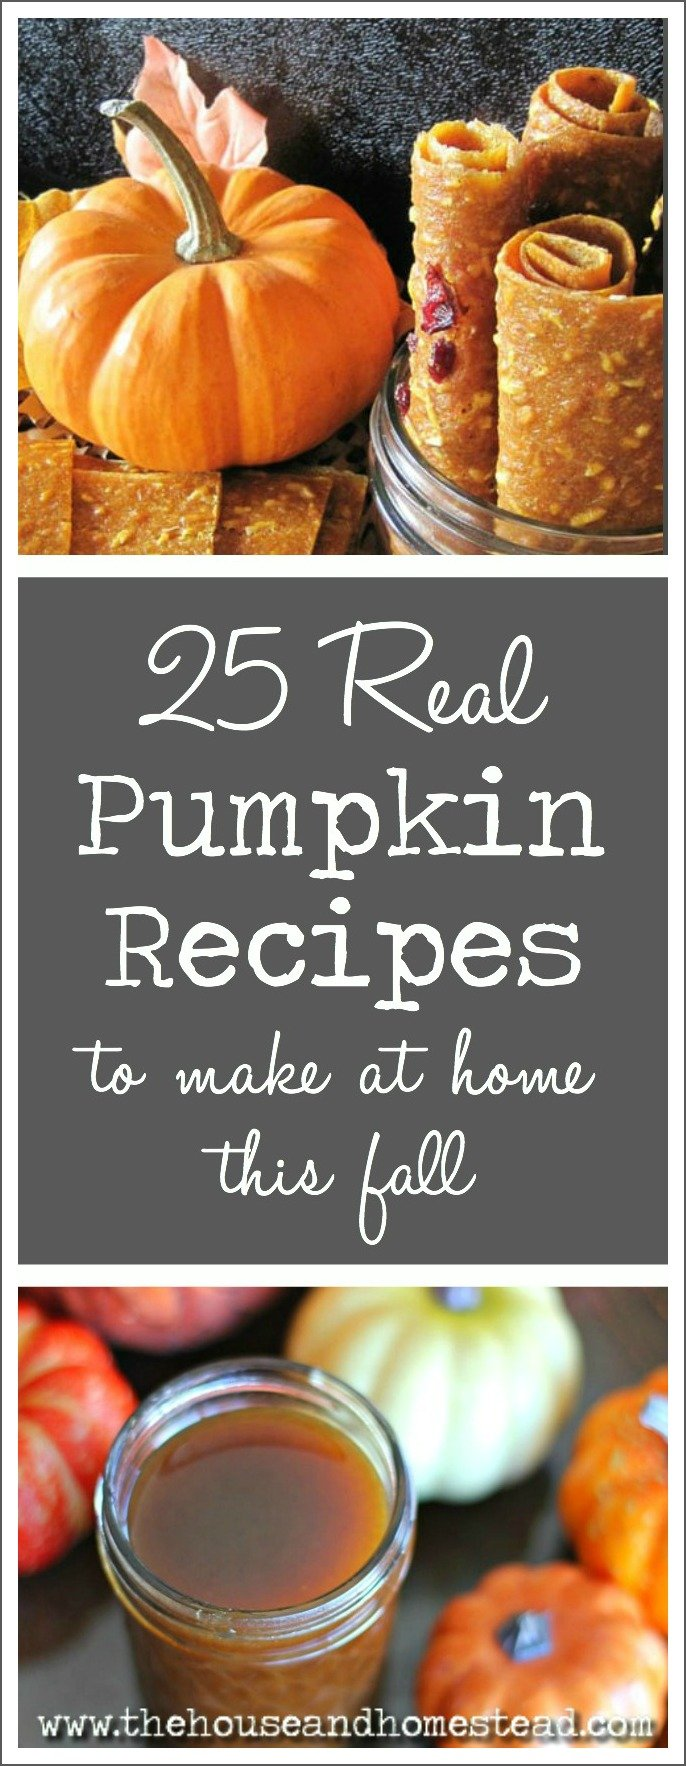 The pumpkin and pumpkin spice craze has taken over our fall food products over the past few years. But hardly any of those store-bought food products contain actual pumpkin! Put the pumpkin back in your favourite fall foods with these 25 real pumpkin recipes for fall.